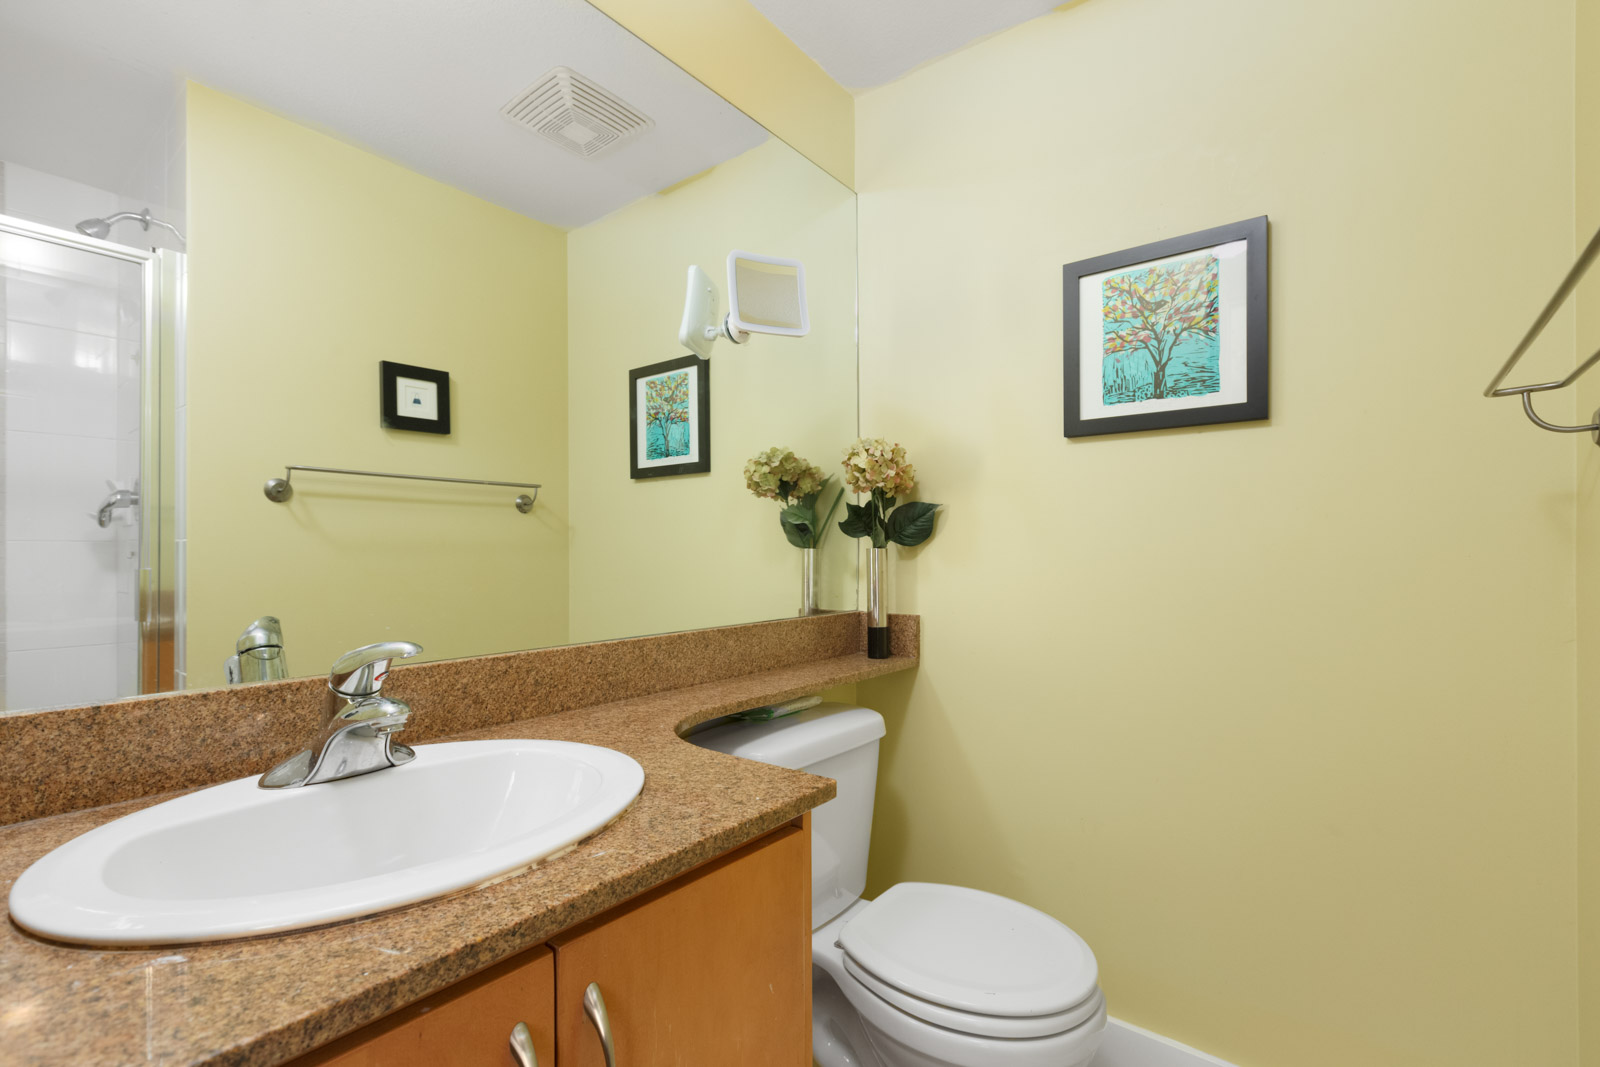 bathroom with yellow walls and vanity and counter on left and toilet on right in rental condo in south granville neighbourhood of vancouver